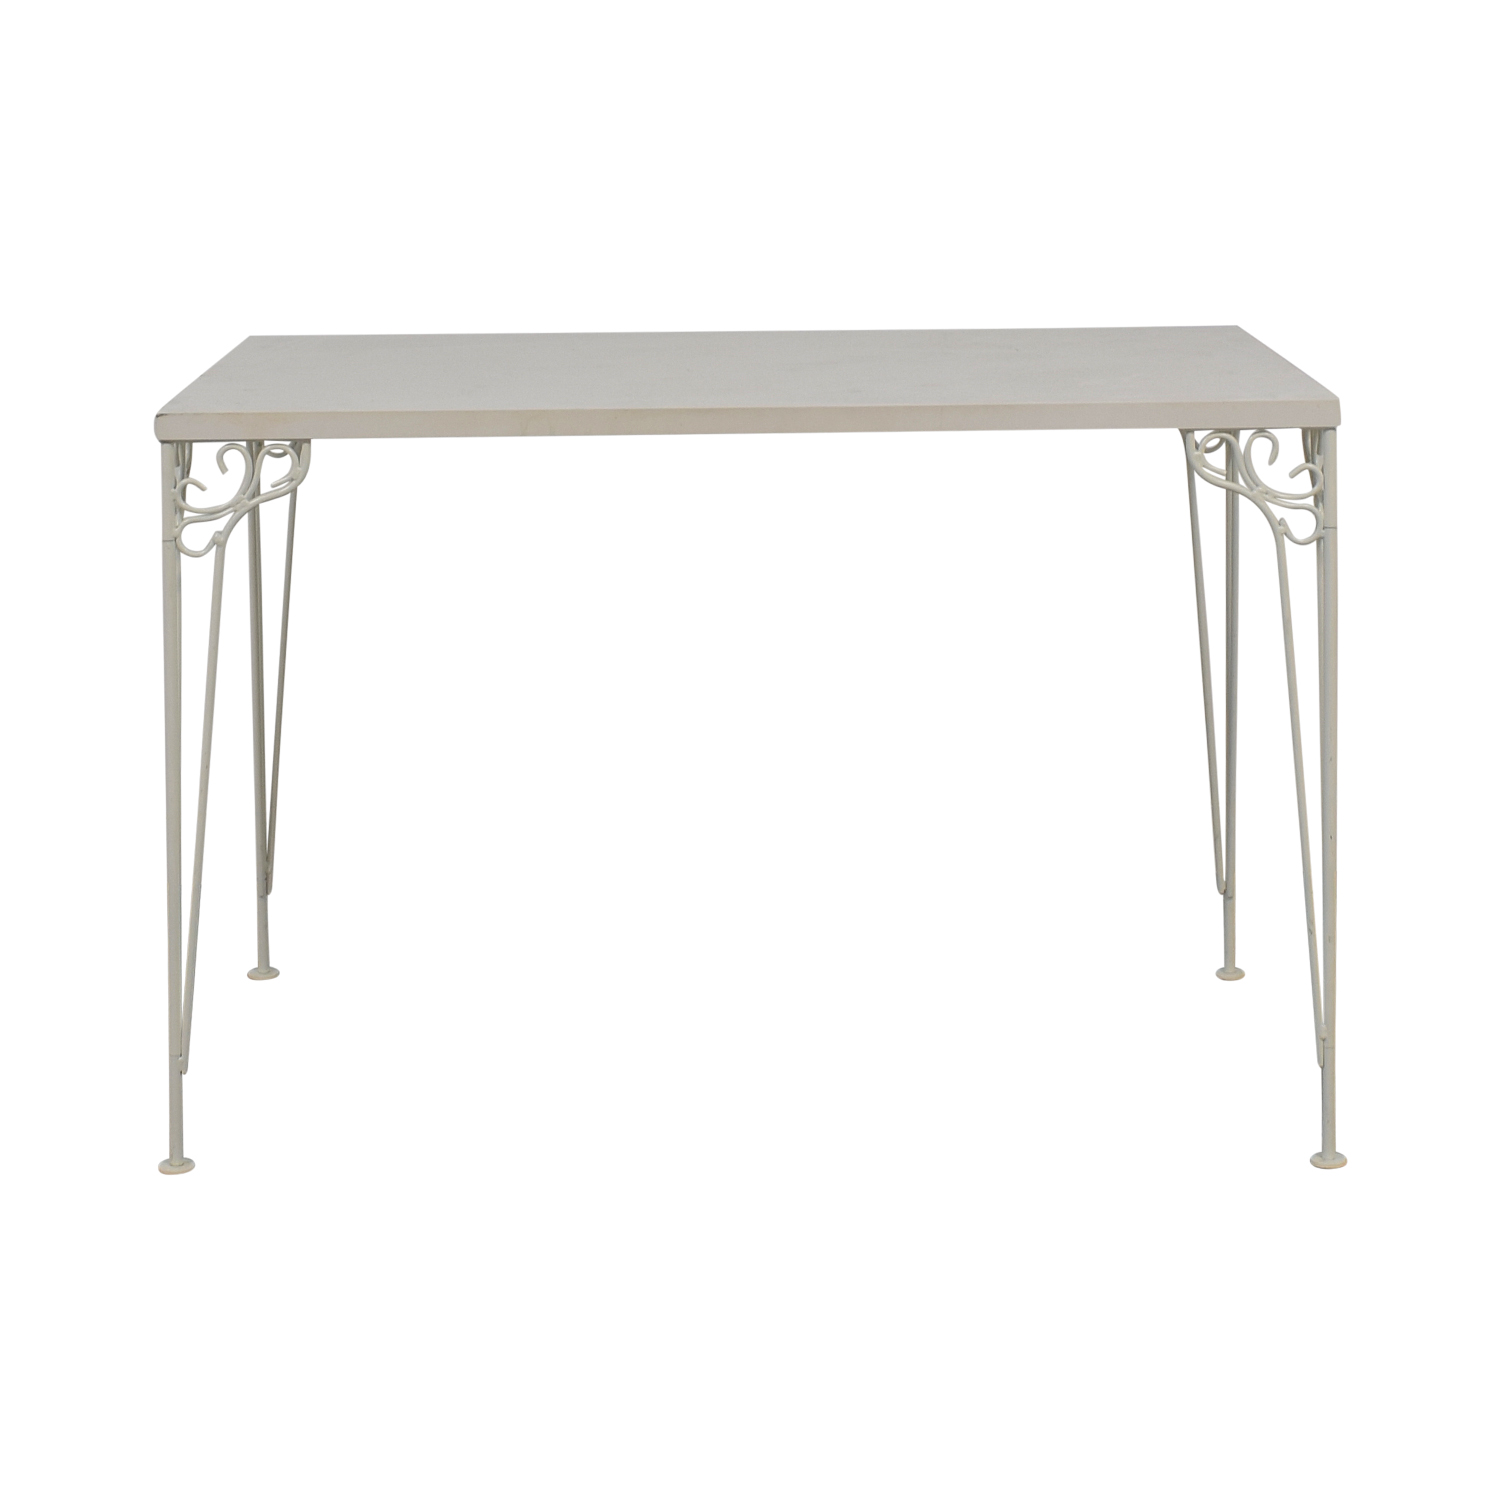 IKEA IKEA White Filigree Legged Desk Home Office Desks